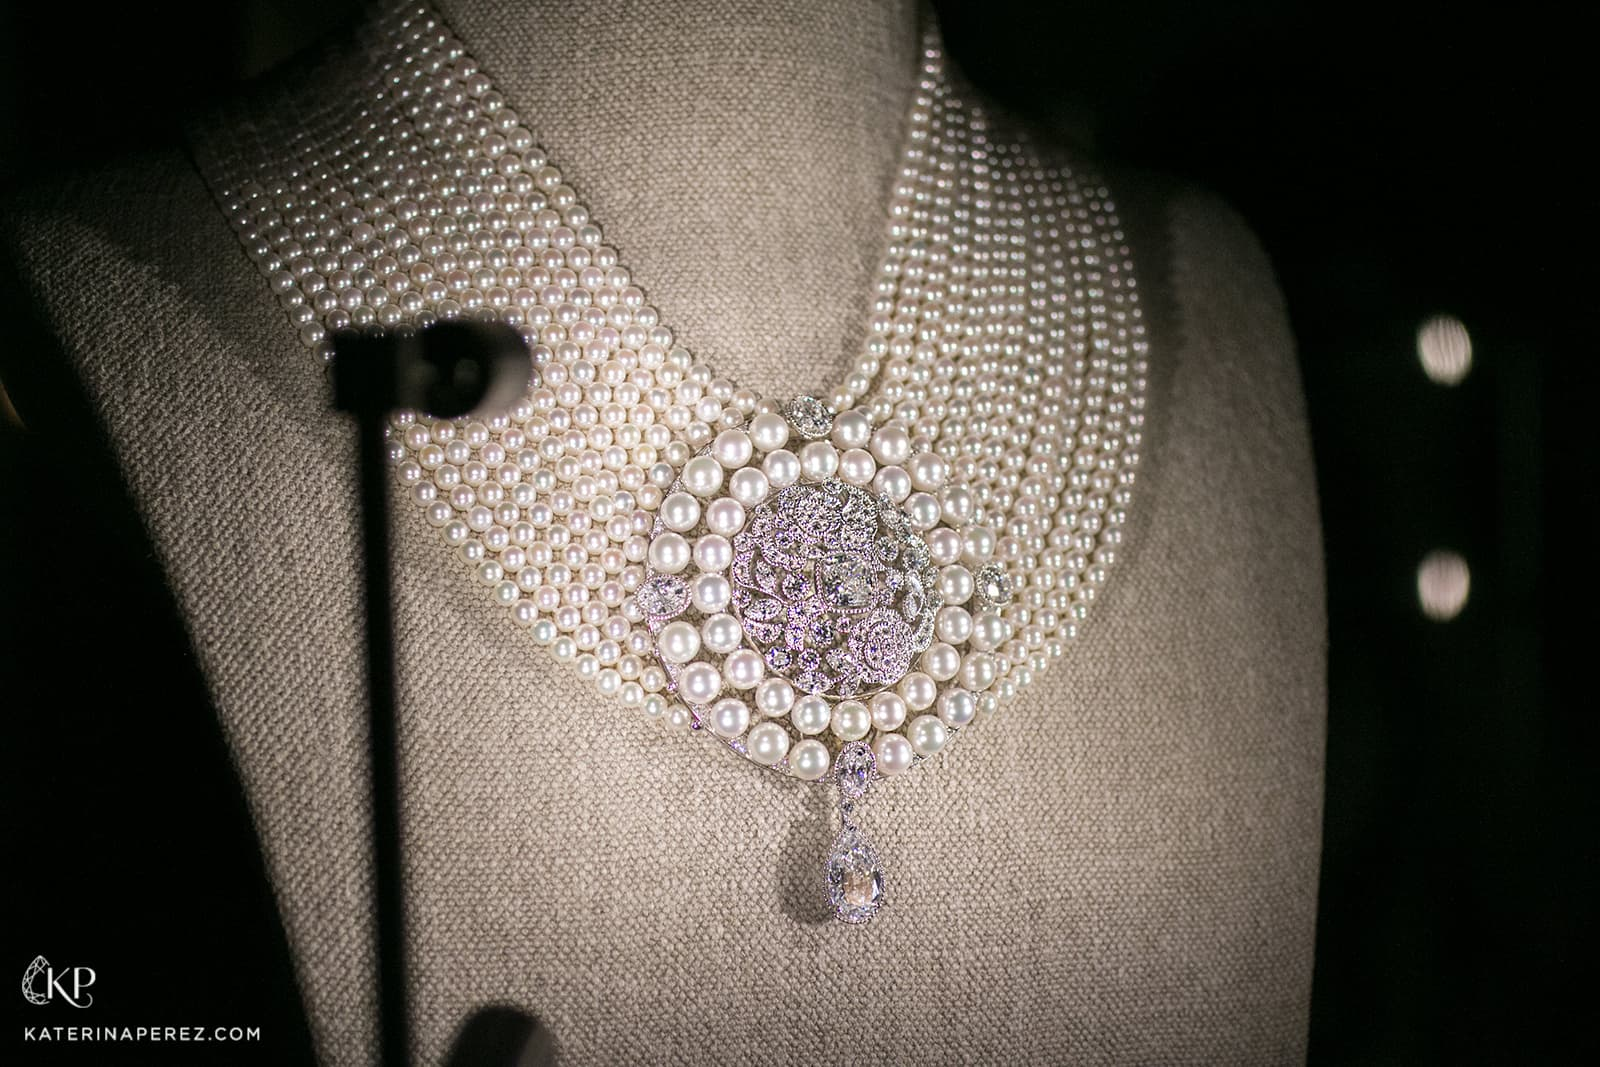 Chanel 'Le Paris Russe de Chanel' collection necklace with diamonds and pearls in white gold